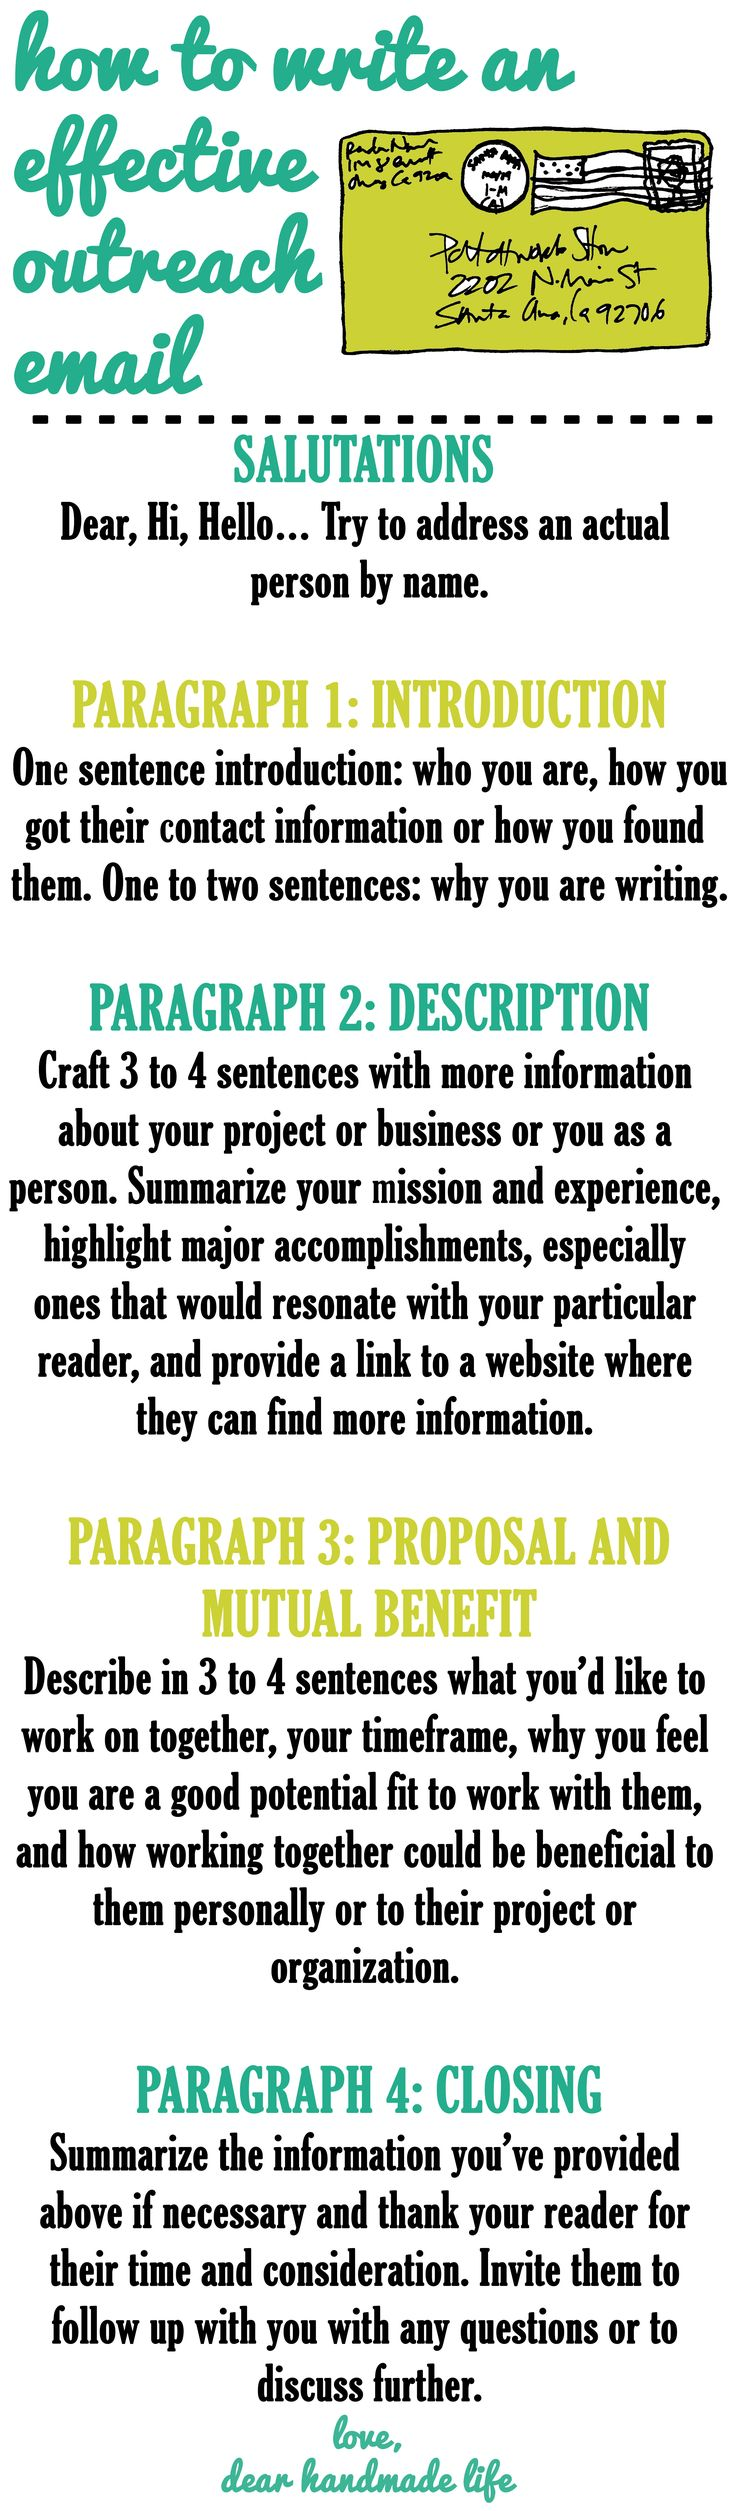 best ideas about project manager cover letter how to write an effective outreach email dear